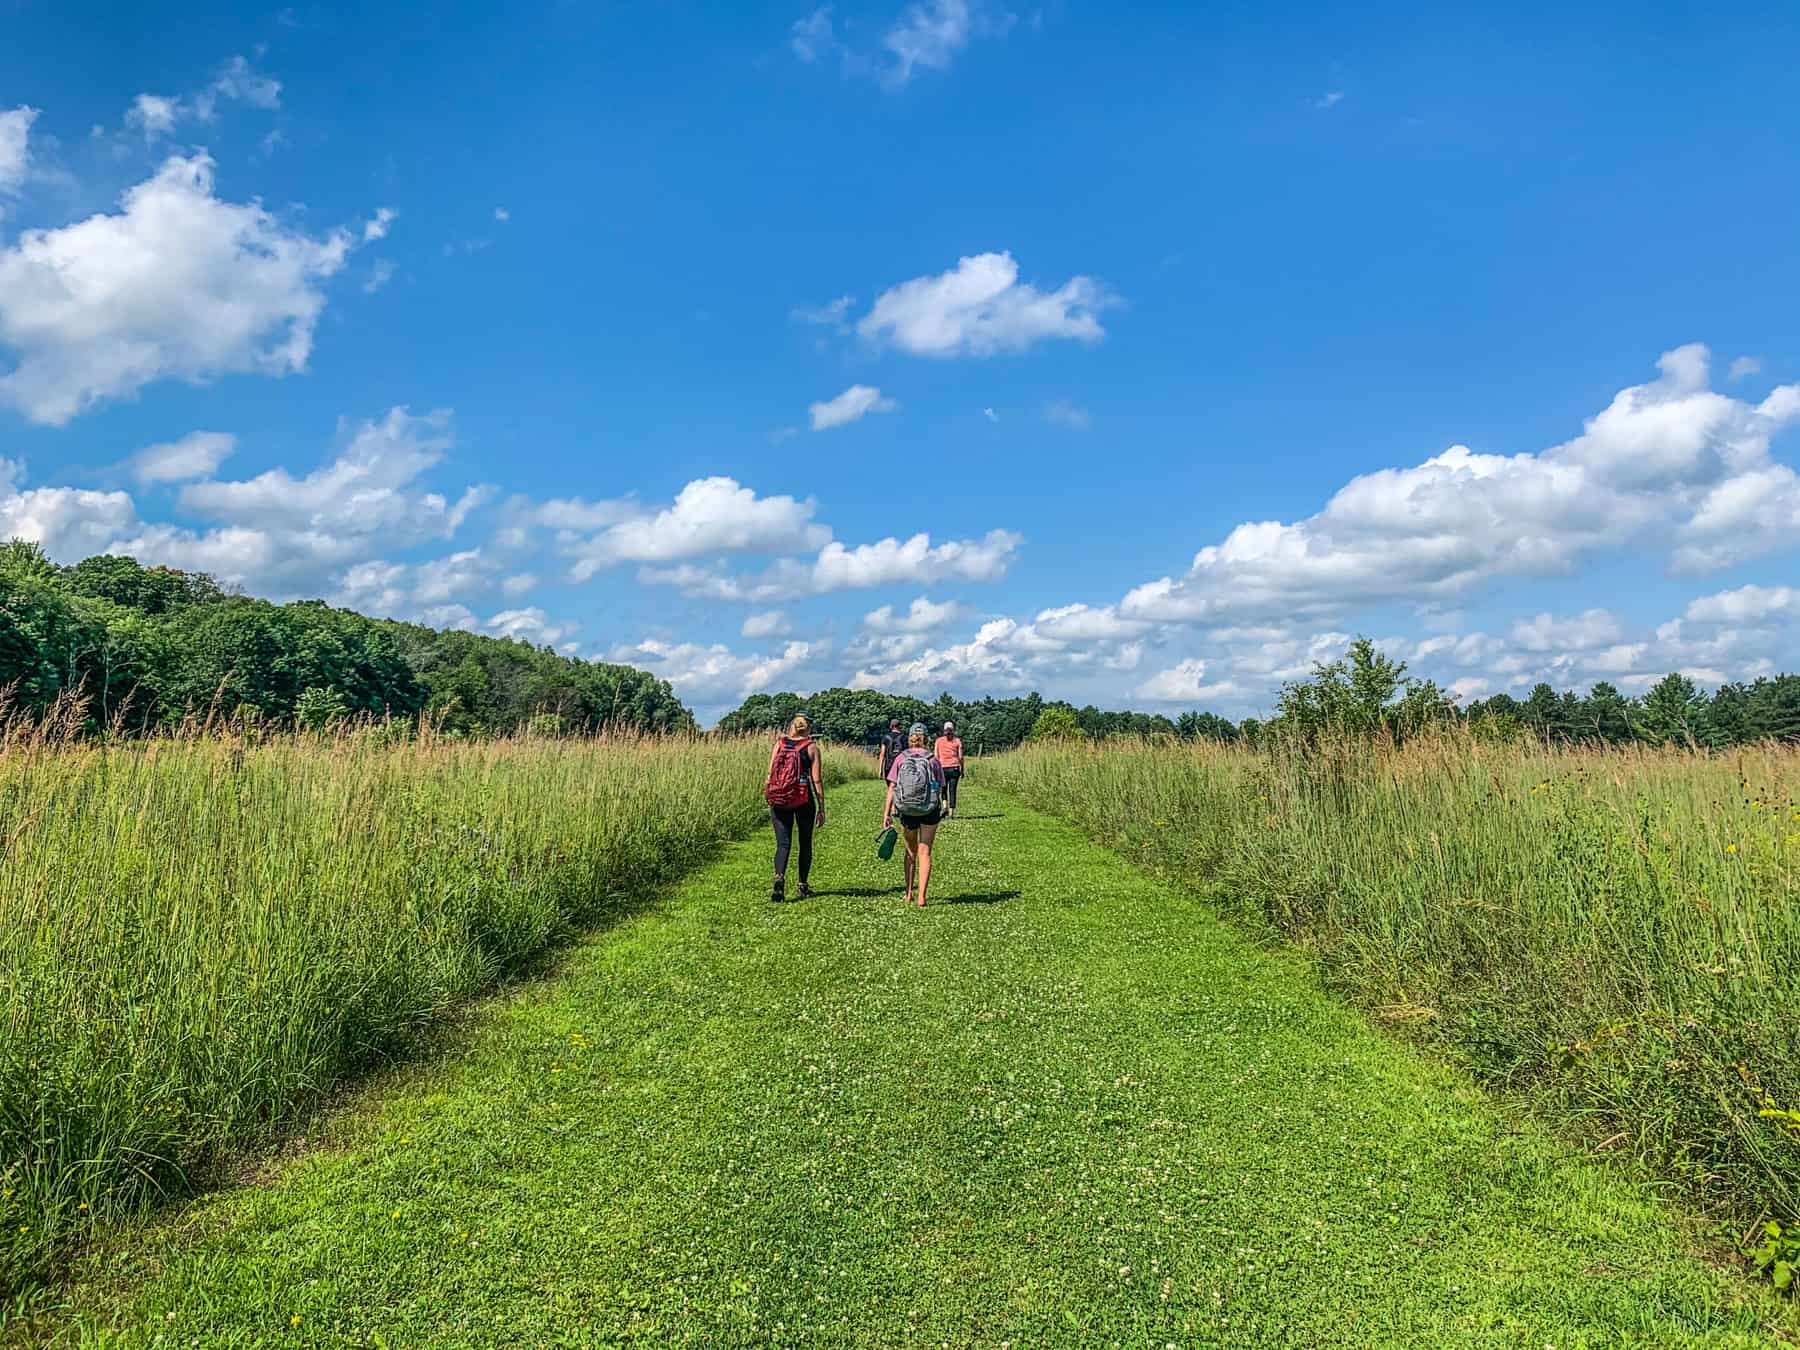 Hiking at William O' Brien State Park. (Photo: Kate Wright, Wild Rivers Conservancy)